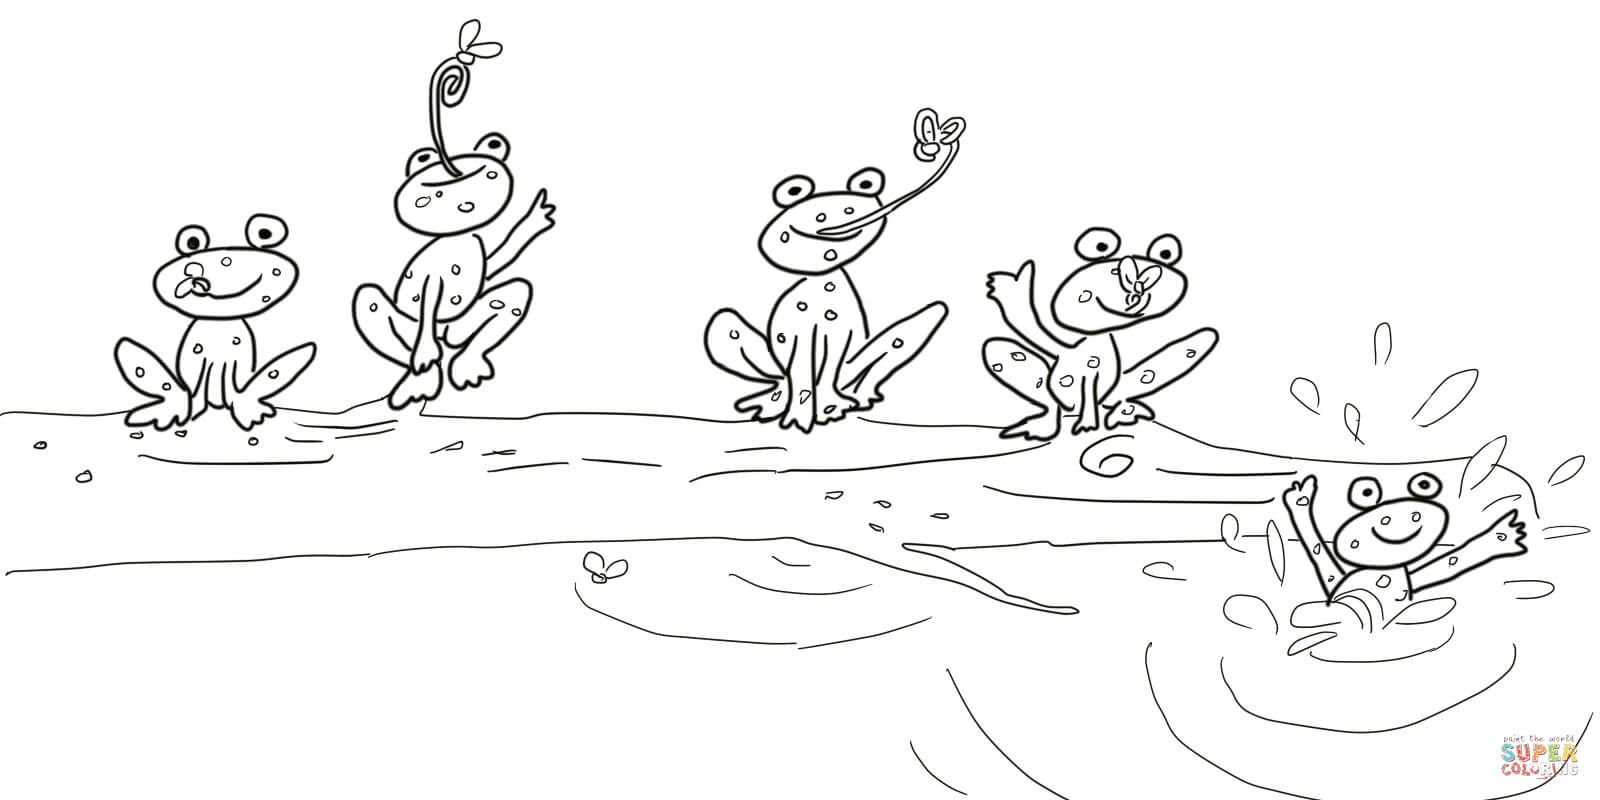 5 Little Speckled Frogs Super Coloring Frog Coloring Pages